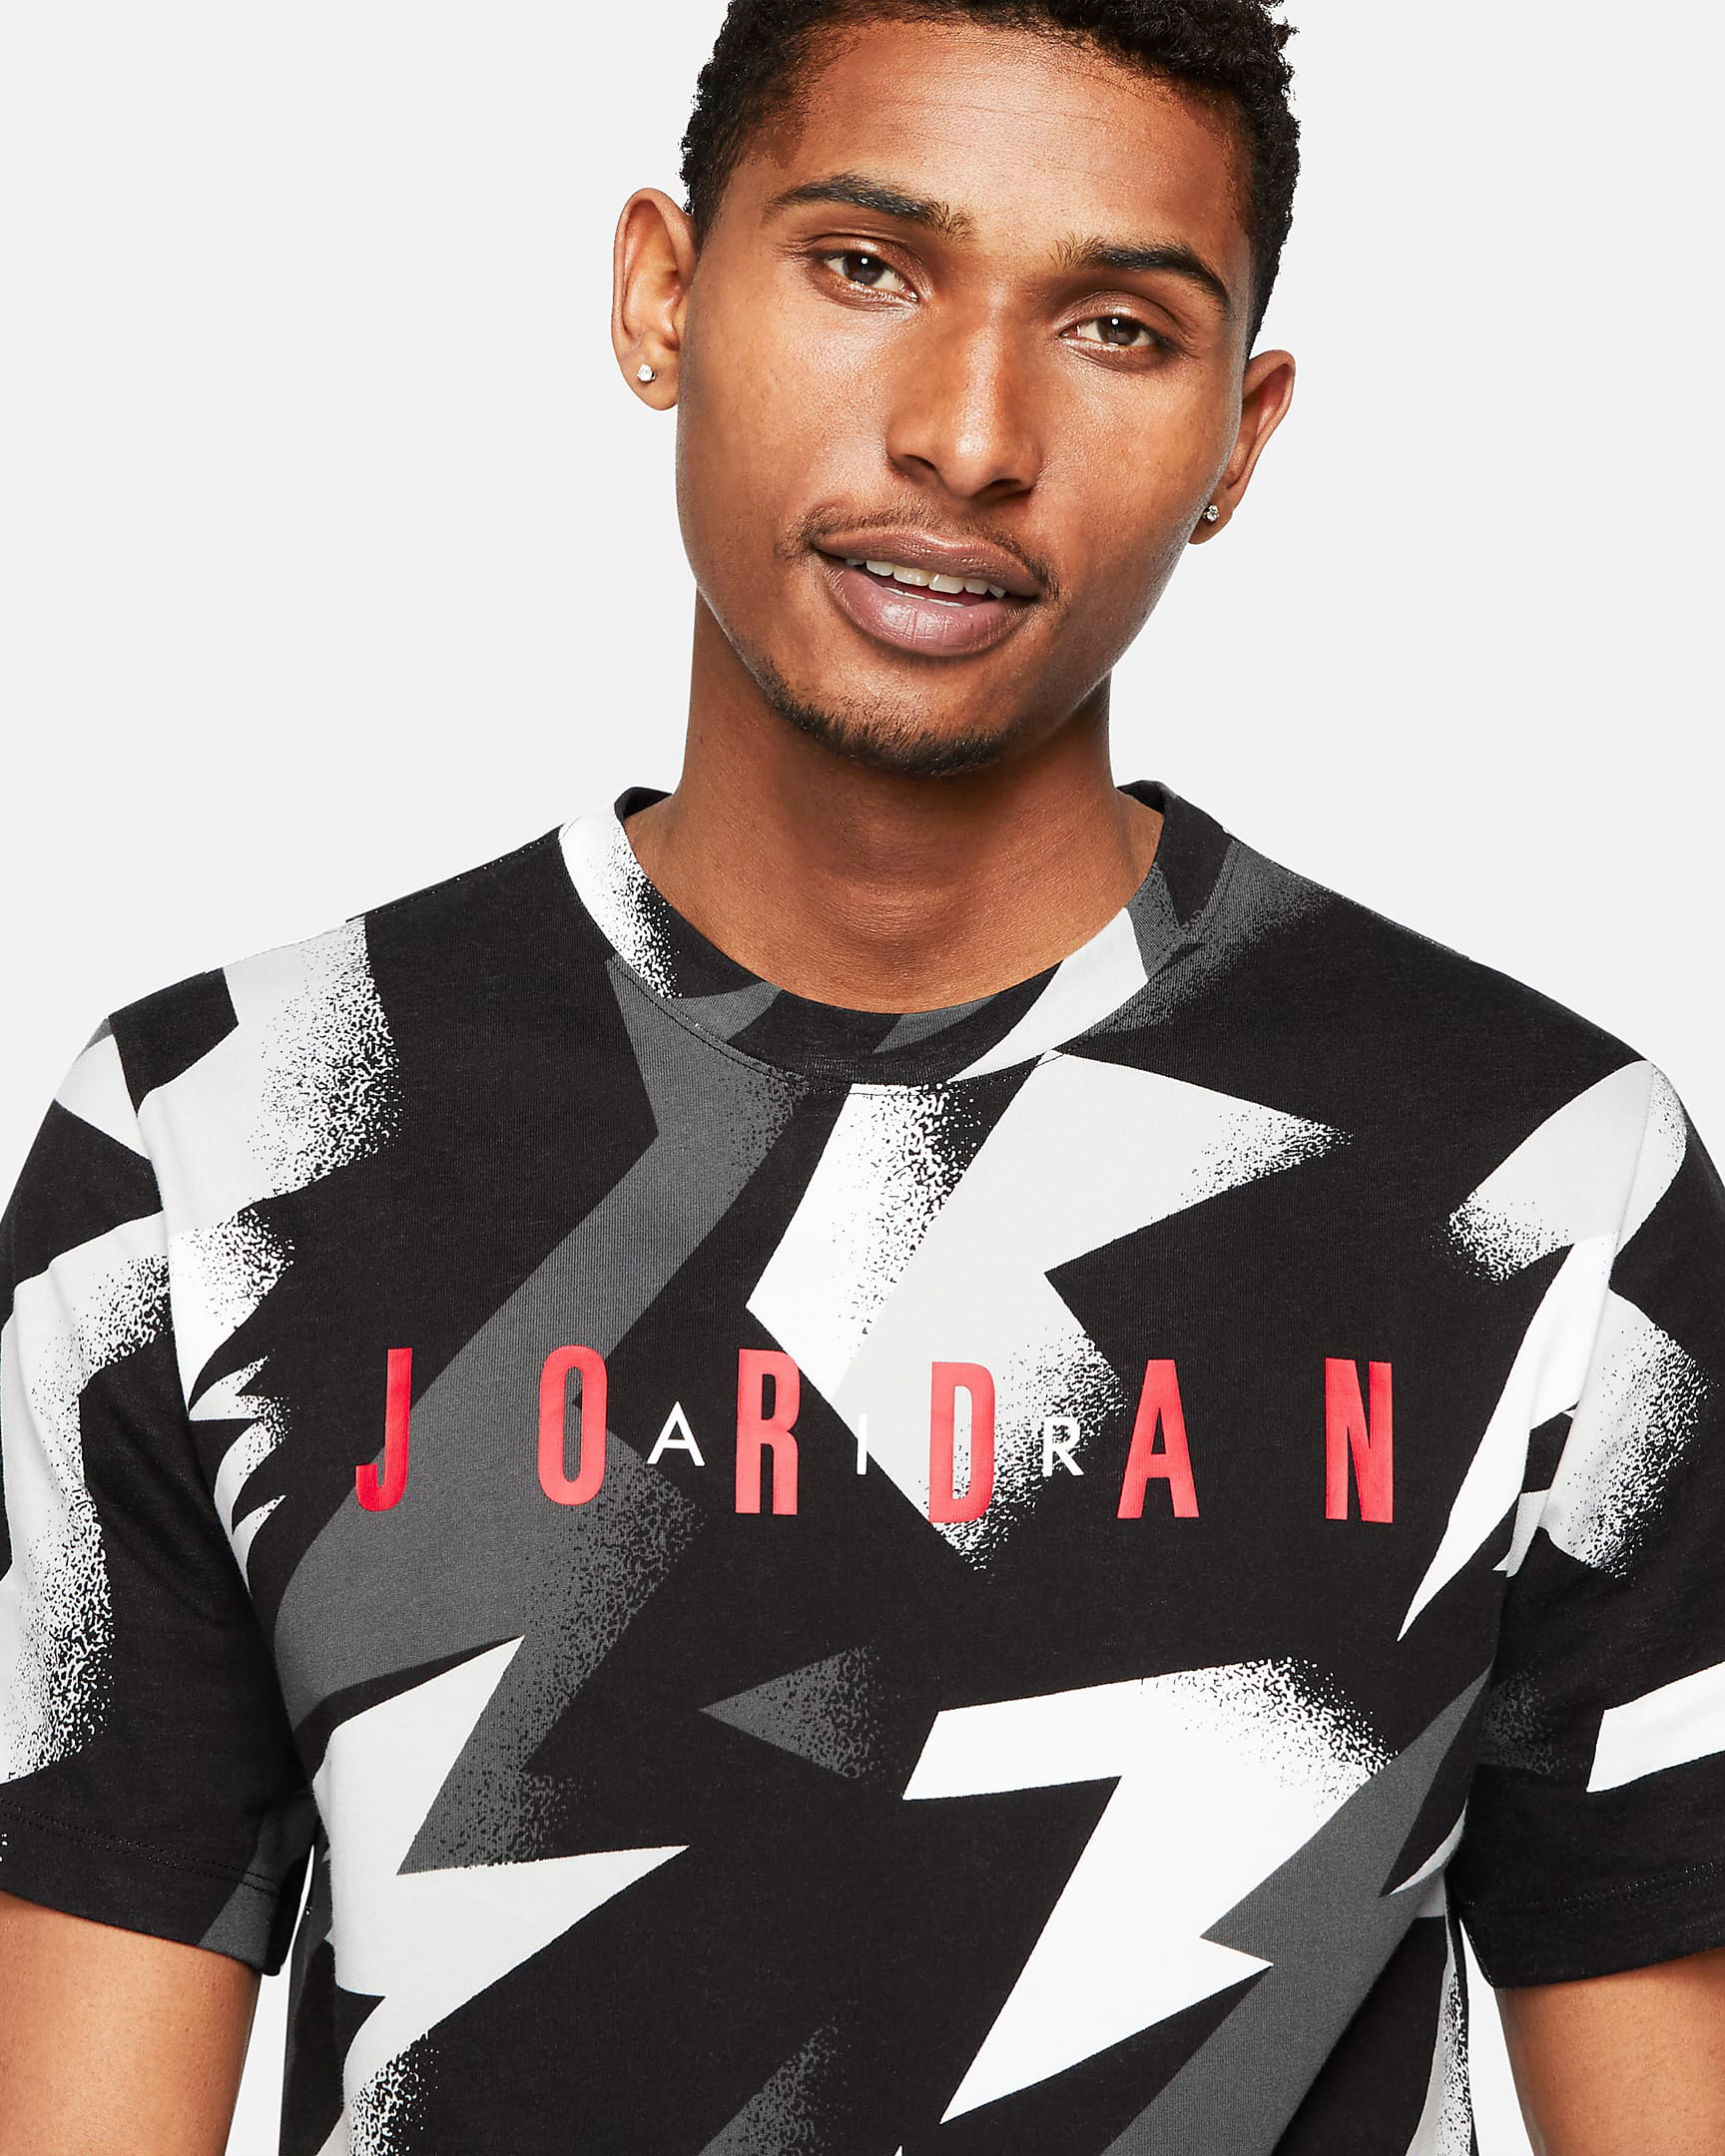 jordan-jumpman-air-printed-shirt-summer-2021-black-white-grey-red-1